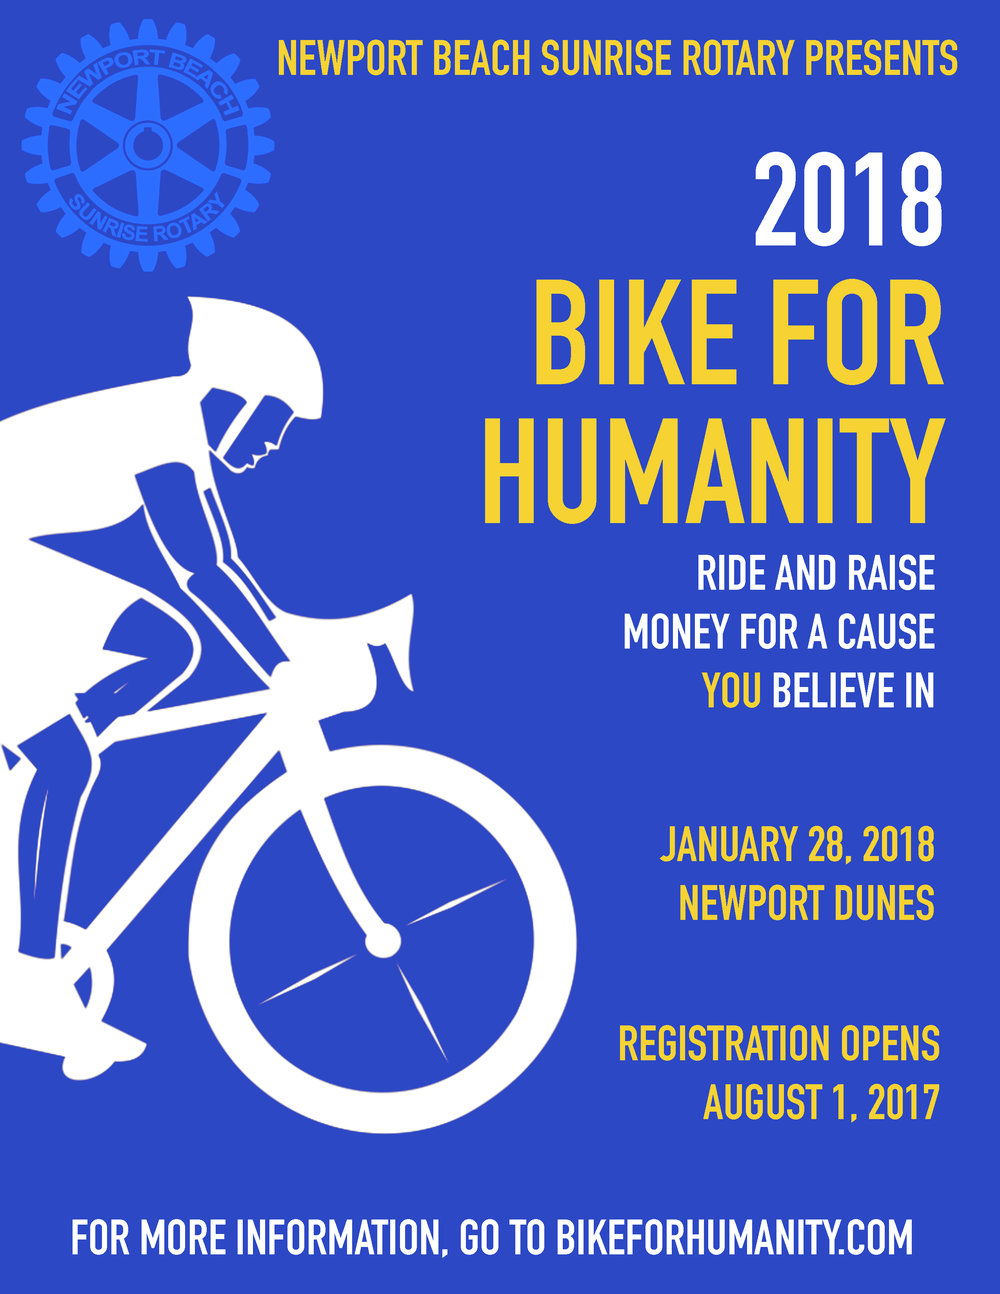 Event flyer for Newport Beach Sunrise Rotary's Bike for Humanity event.